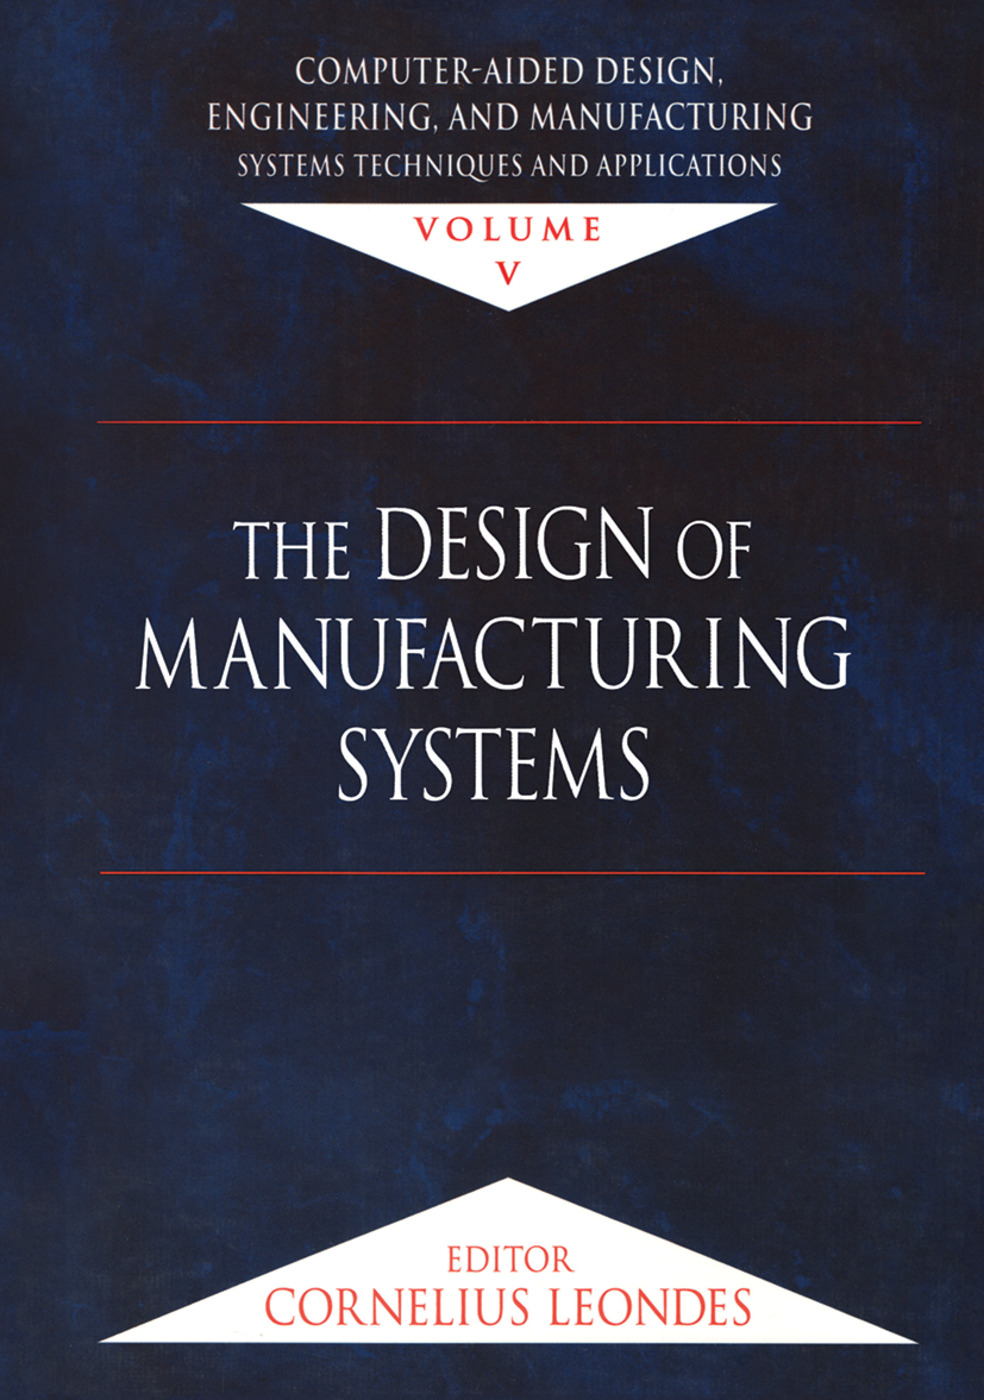 Computer-Aided Design, Engineering, and Manufacturing: Systems Techniques and Applications, Volume V, The Design of Manufacturing Systems, 1st Edition (Hardback) book cover